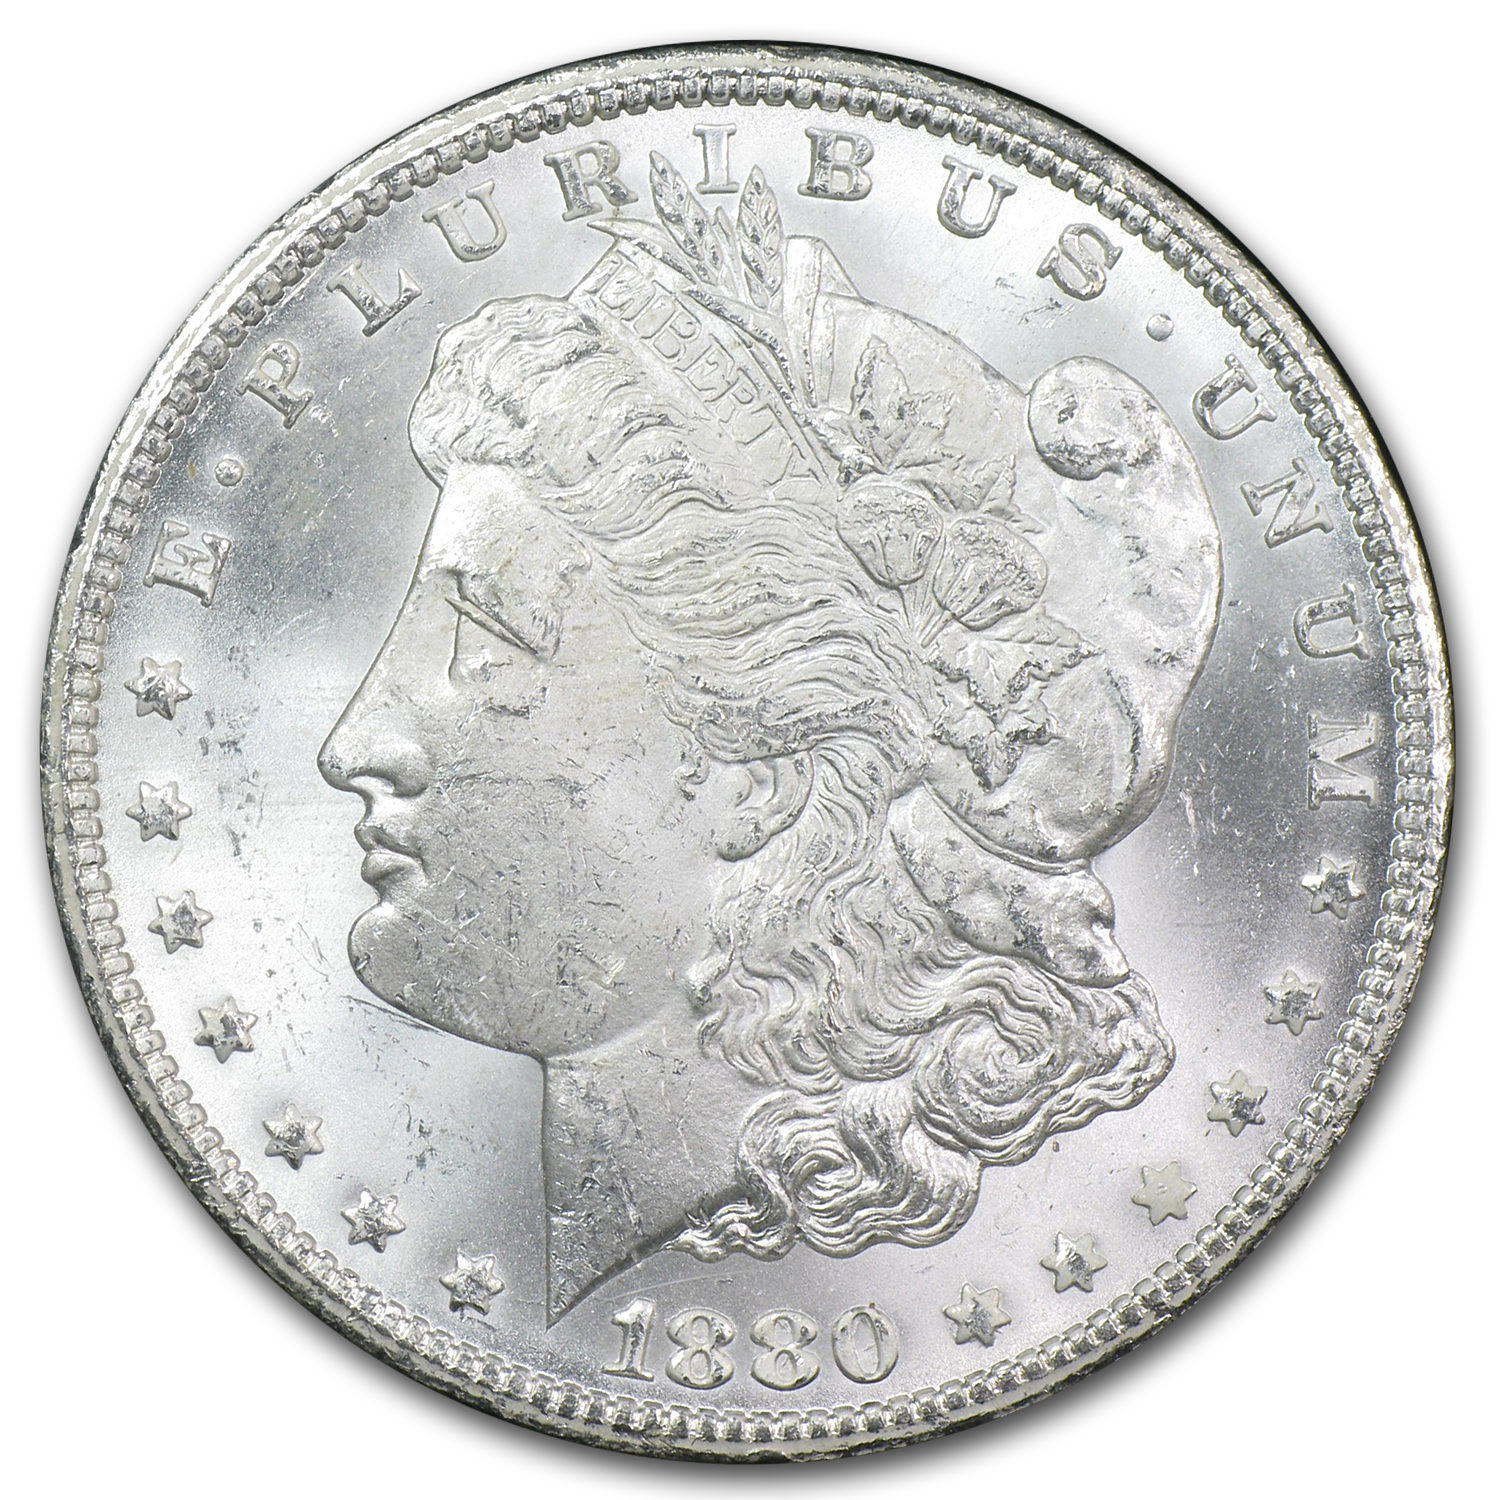 1880-CC Reverse of 1878 Morgan Dollar MS-63 NGC - GSA Certified